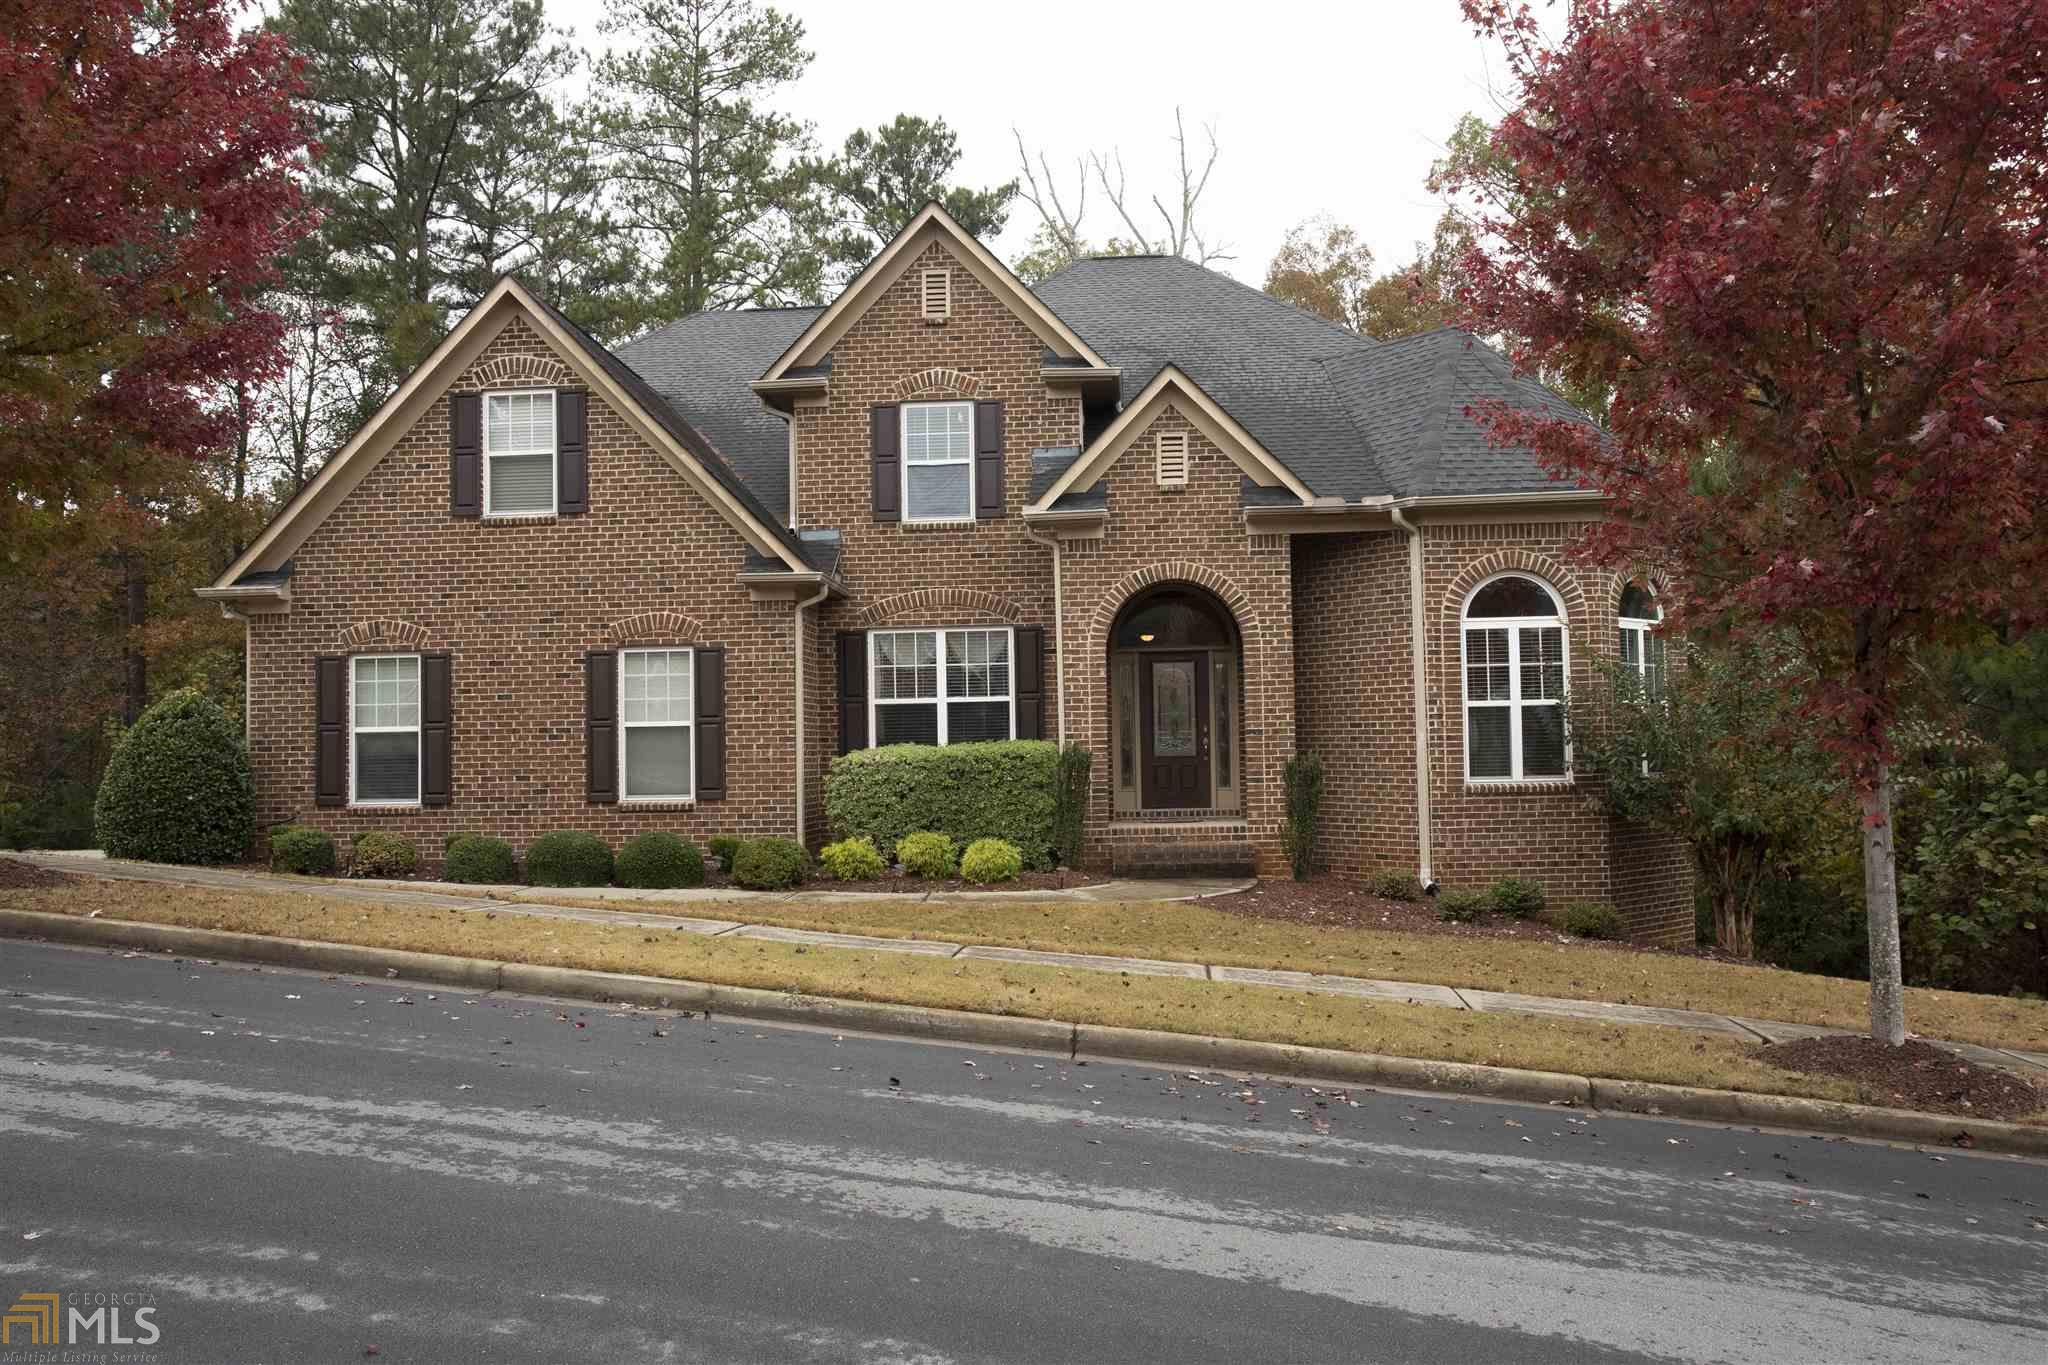 3512 Preservation Cir, Lilburn, GA 30047